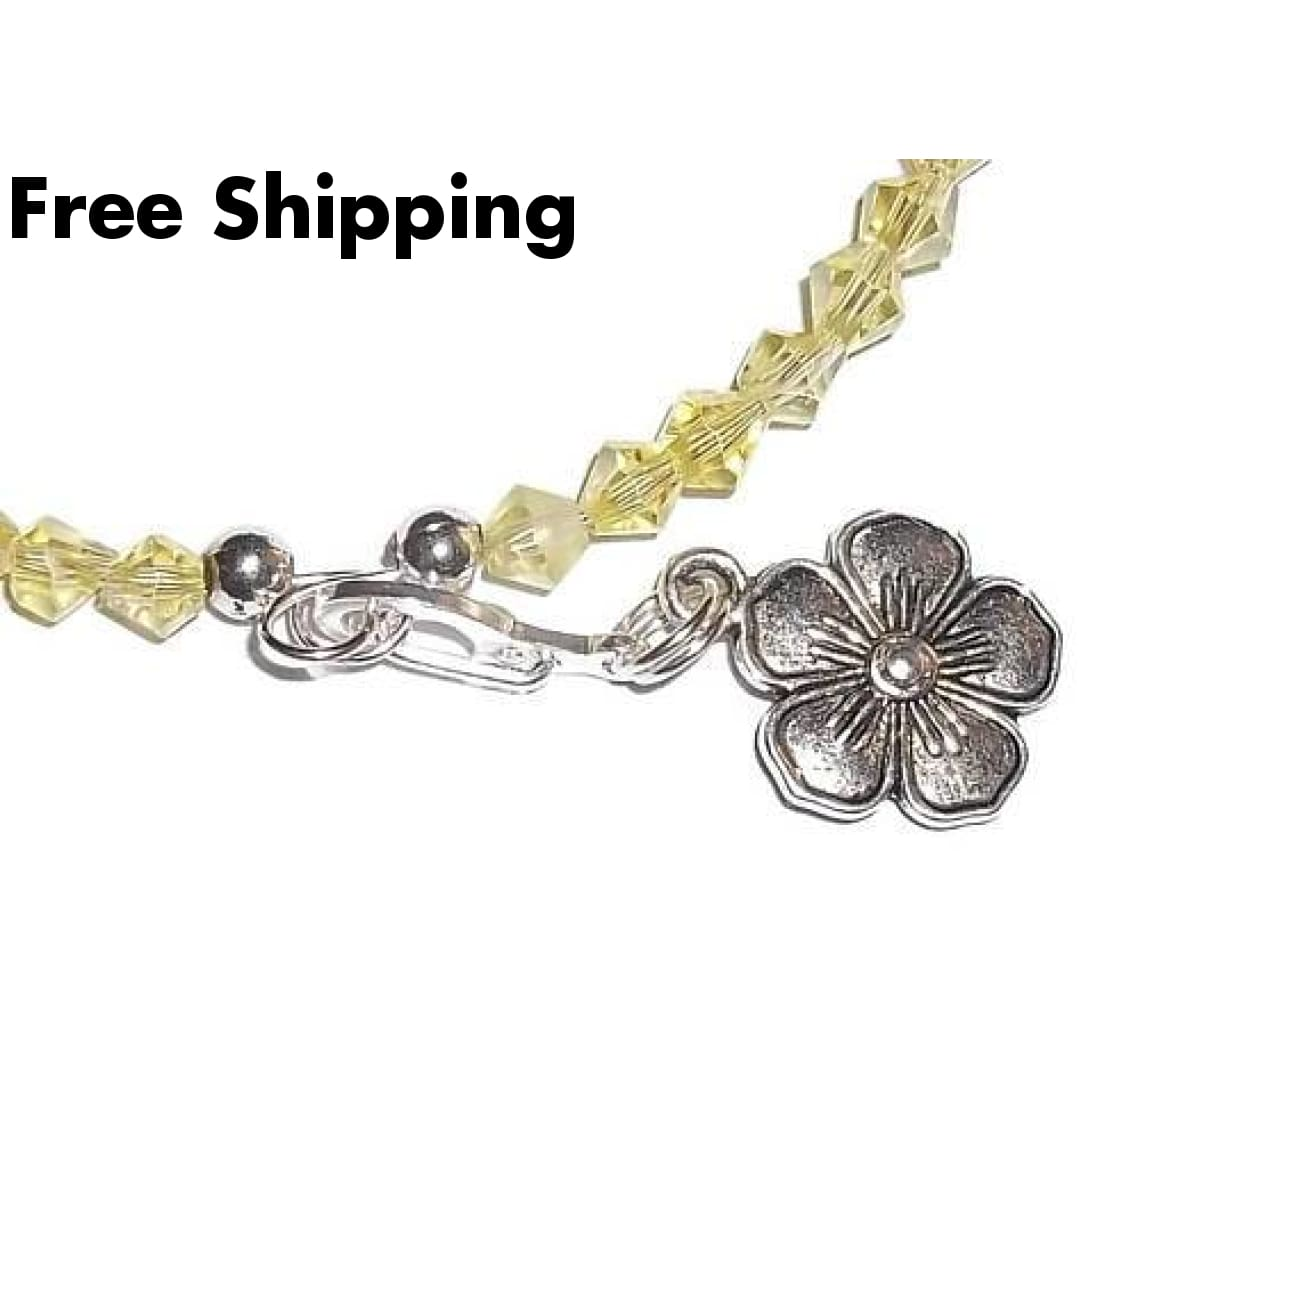 Pansy Flower Lemon Yellow Irridescent Swarovski Crystal Hand Crafted Charm Bangle Bracelet - Bracelets